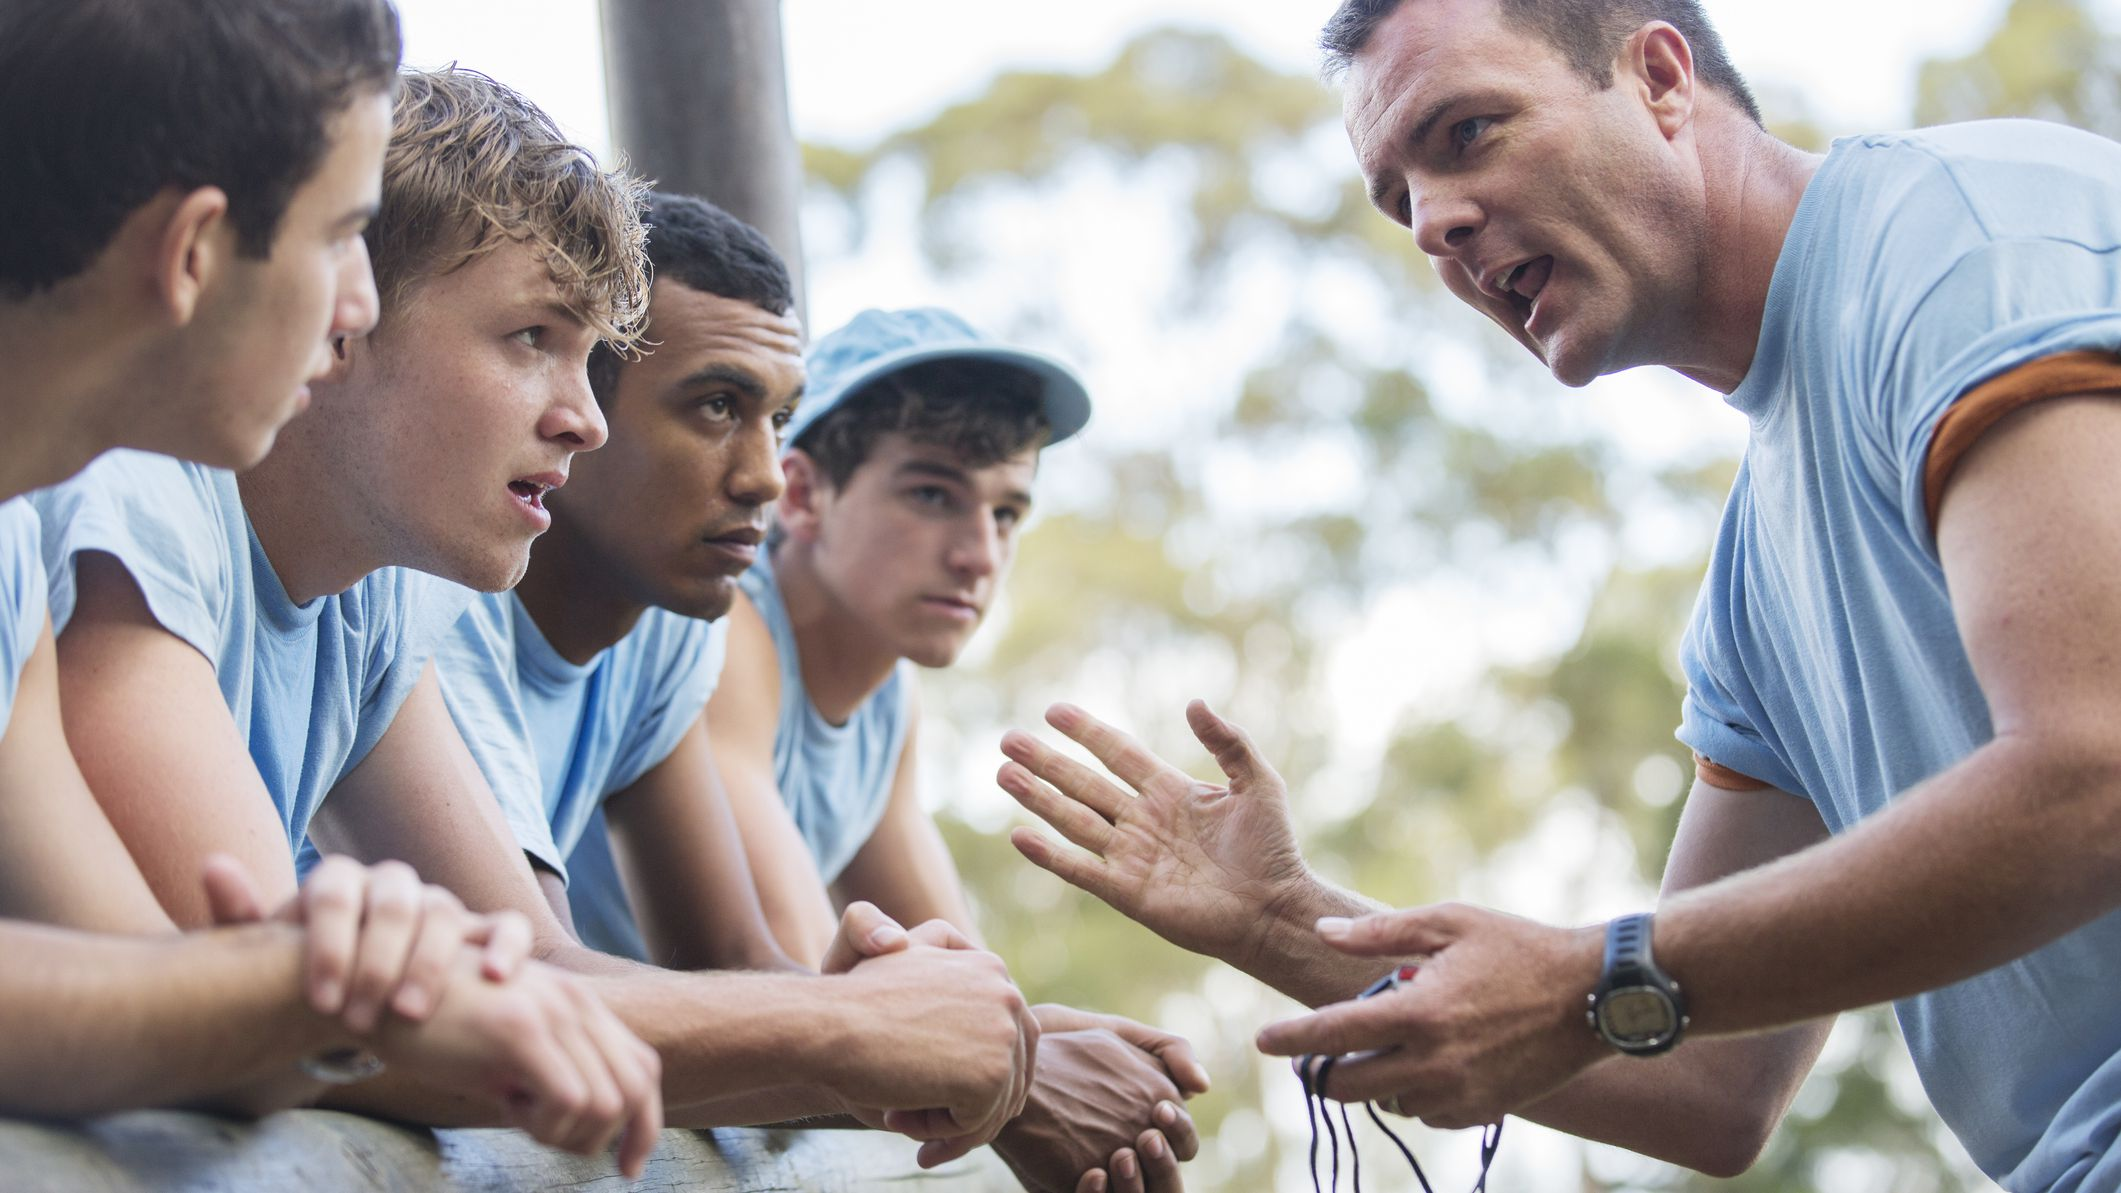 Signs That Your Child's Coach Is a Jerk